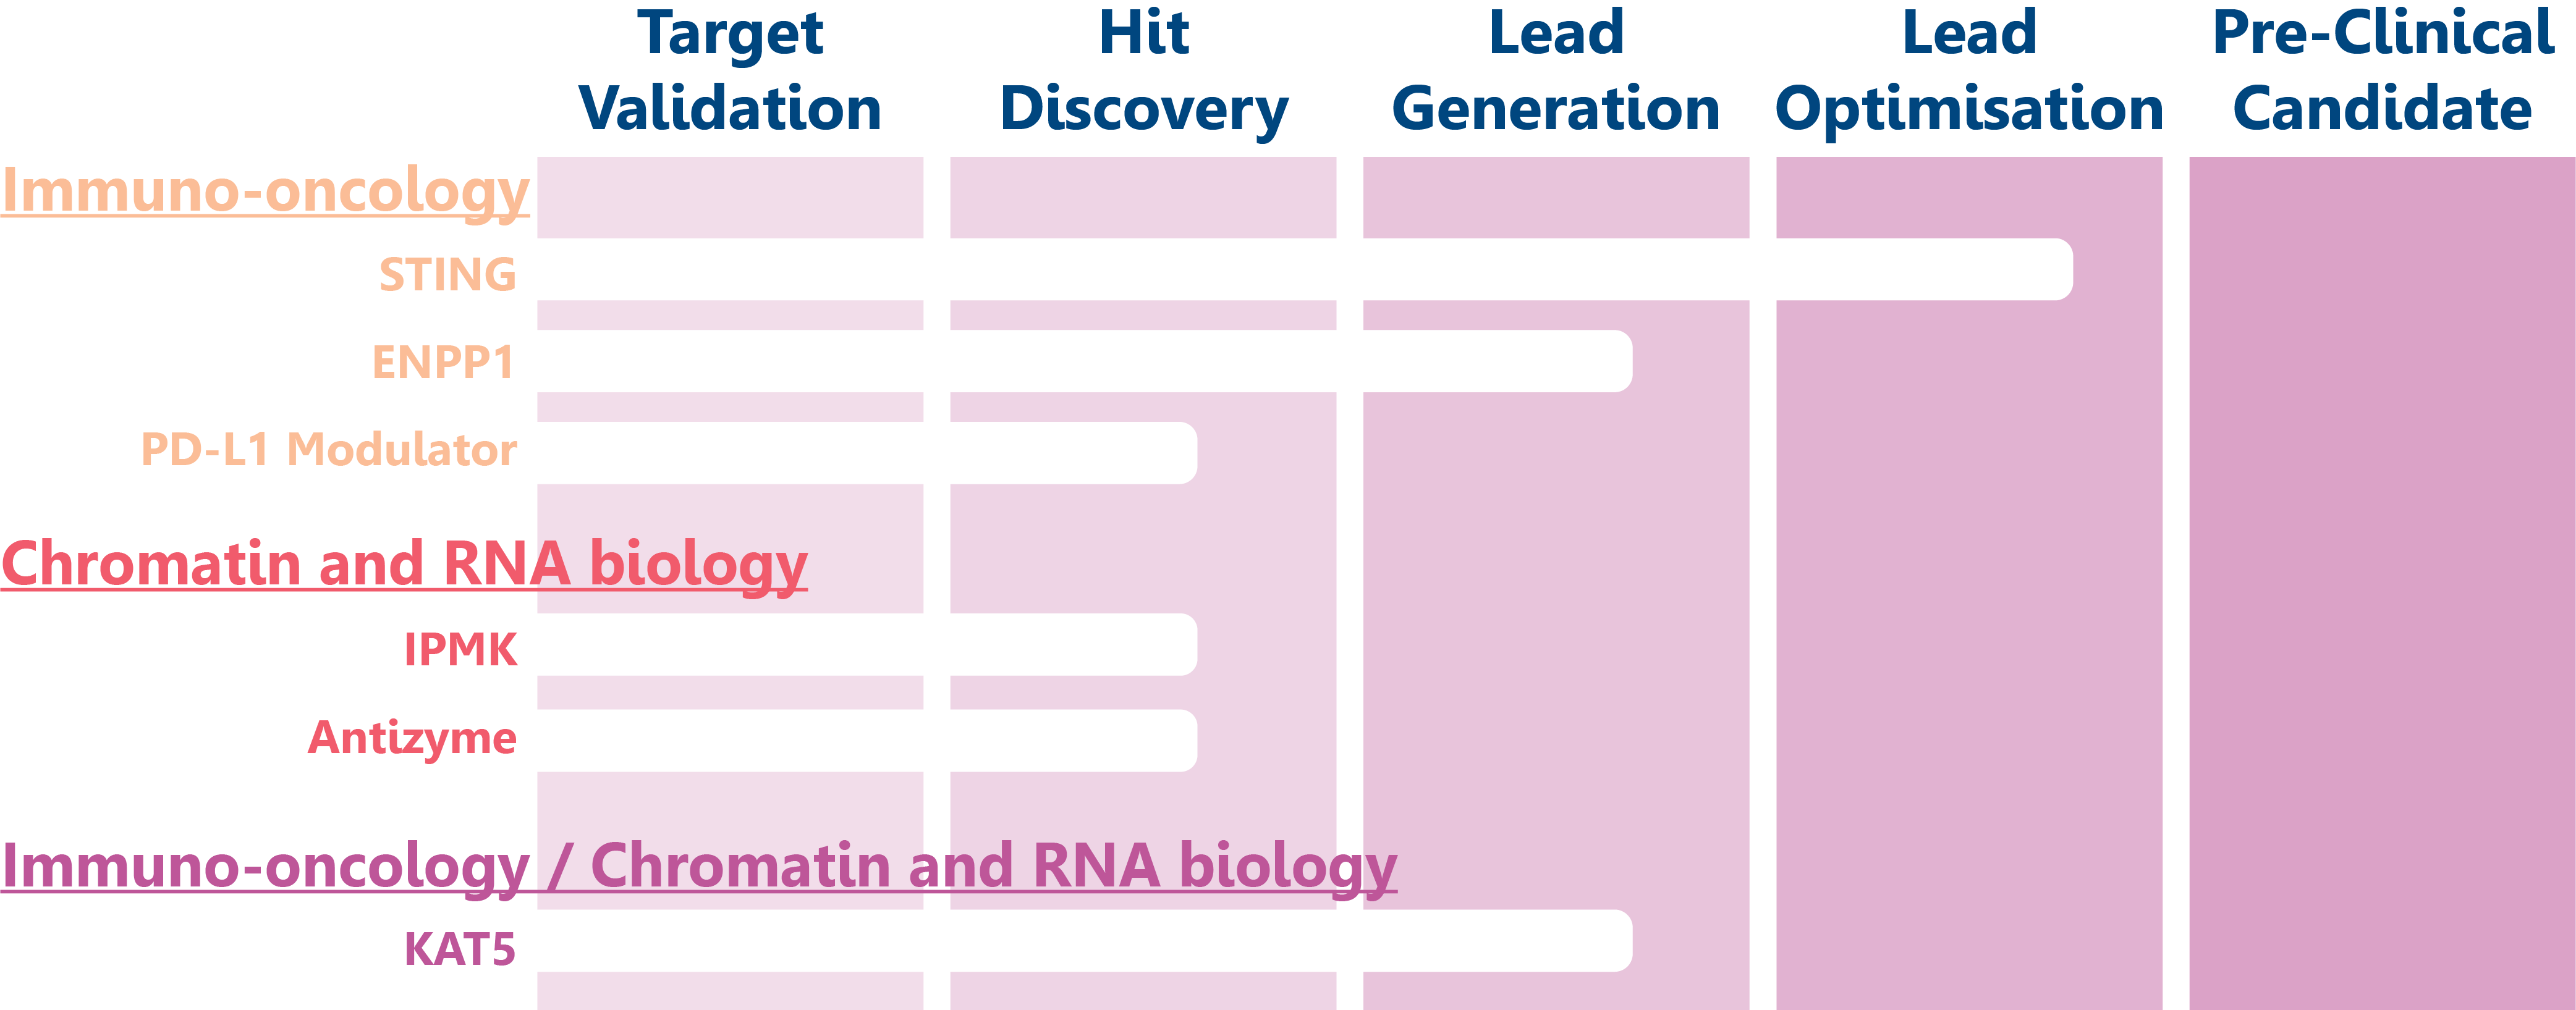 Diagram outlining current cancer research projects and their milestones